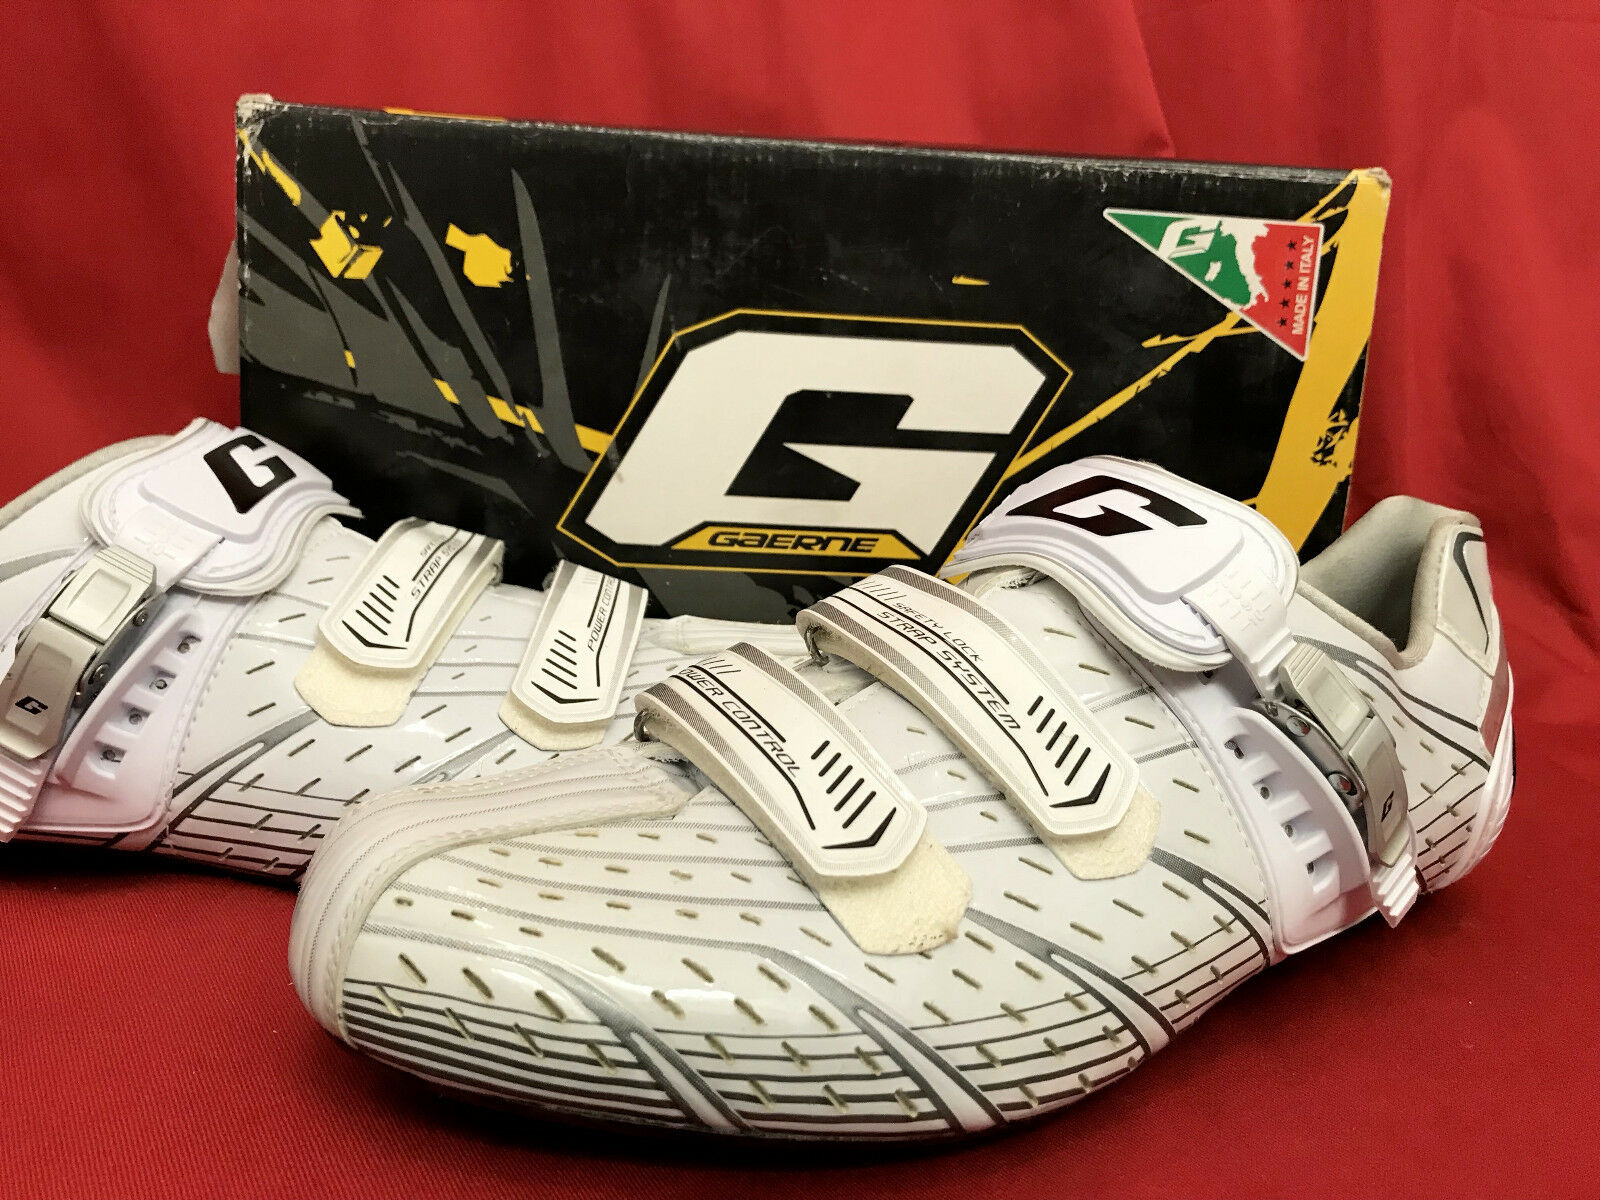 NEW GAERNE G. MYST professional design Carbon race cycle shoes shoes white EU47